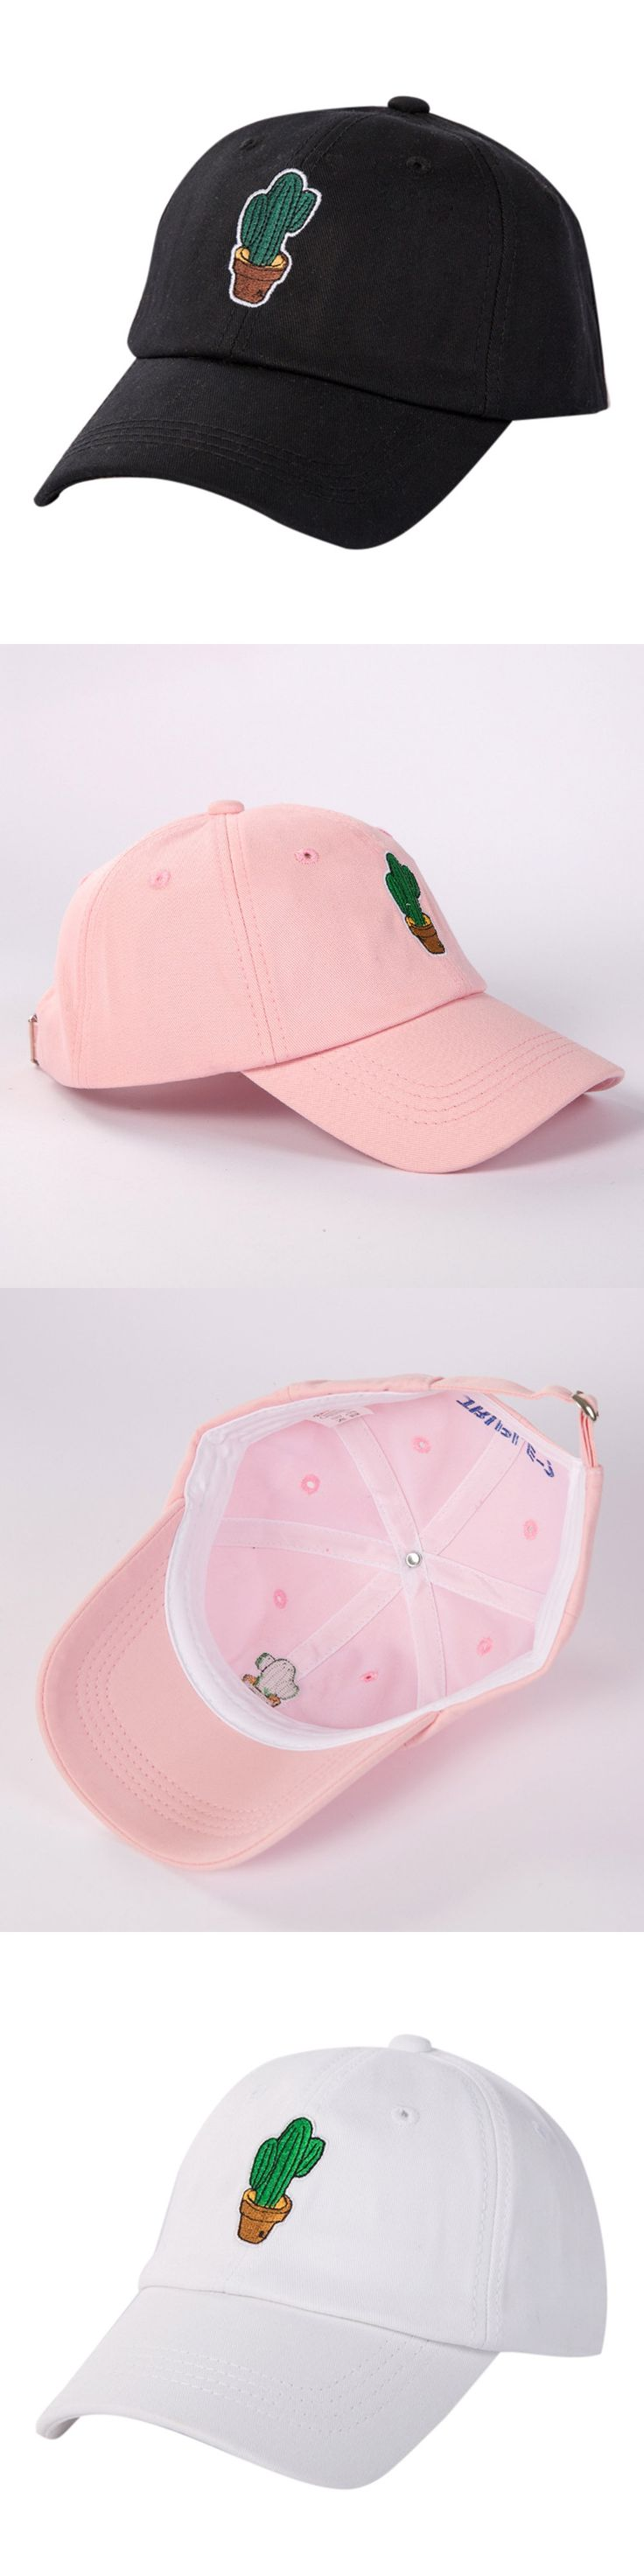 High Recommend More Funny Women's Sports Baseball Cap Snapback Golf ball Hip-Hop Hat mens baseball cap gorras de hombre mujer